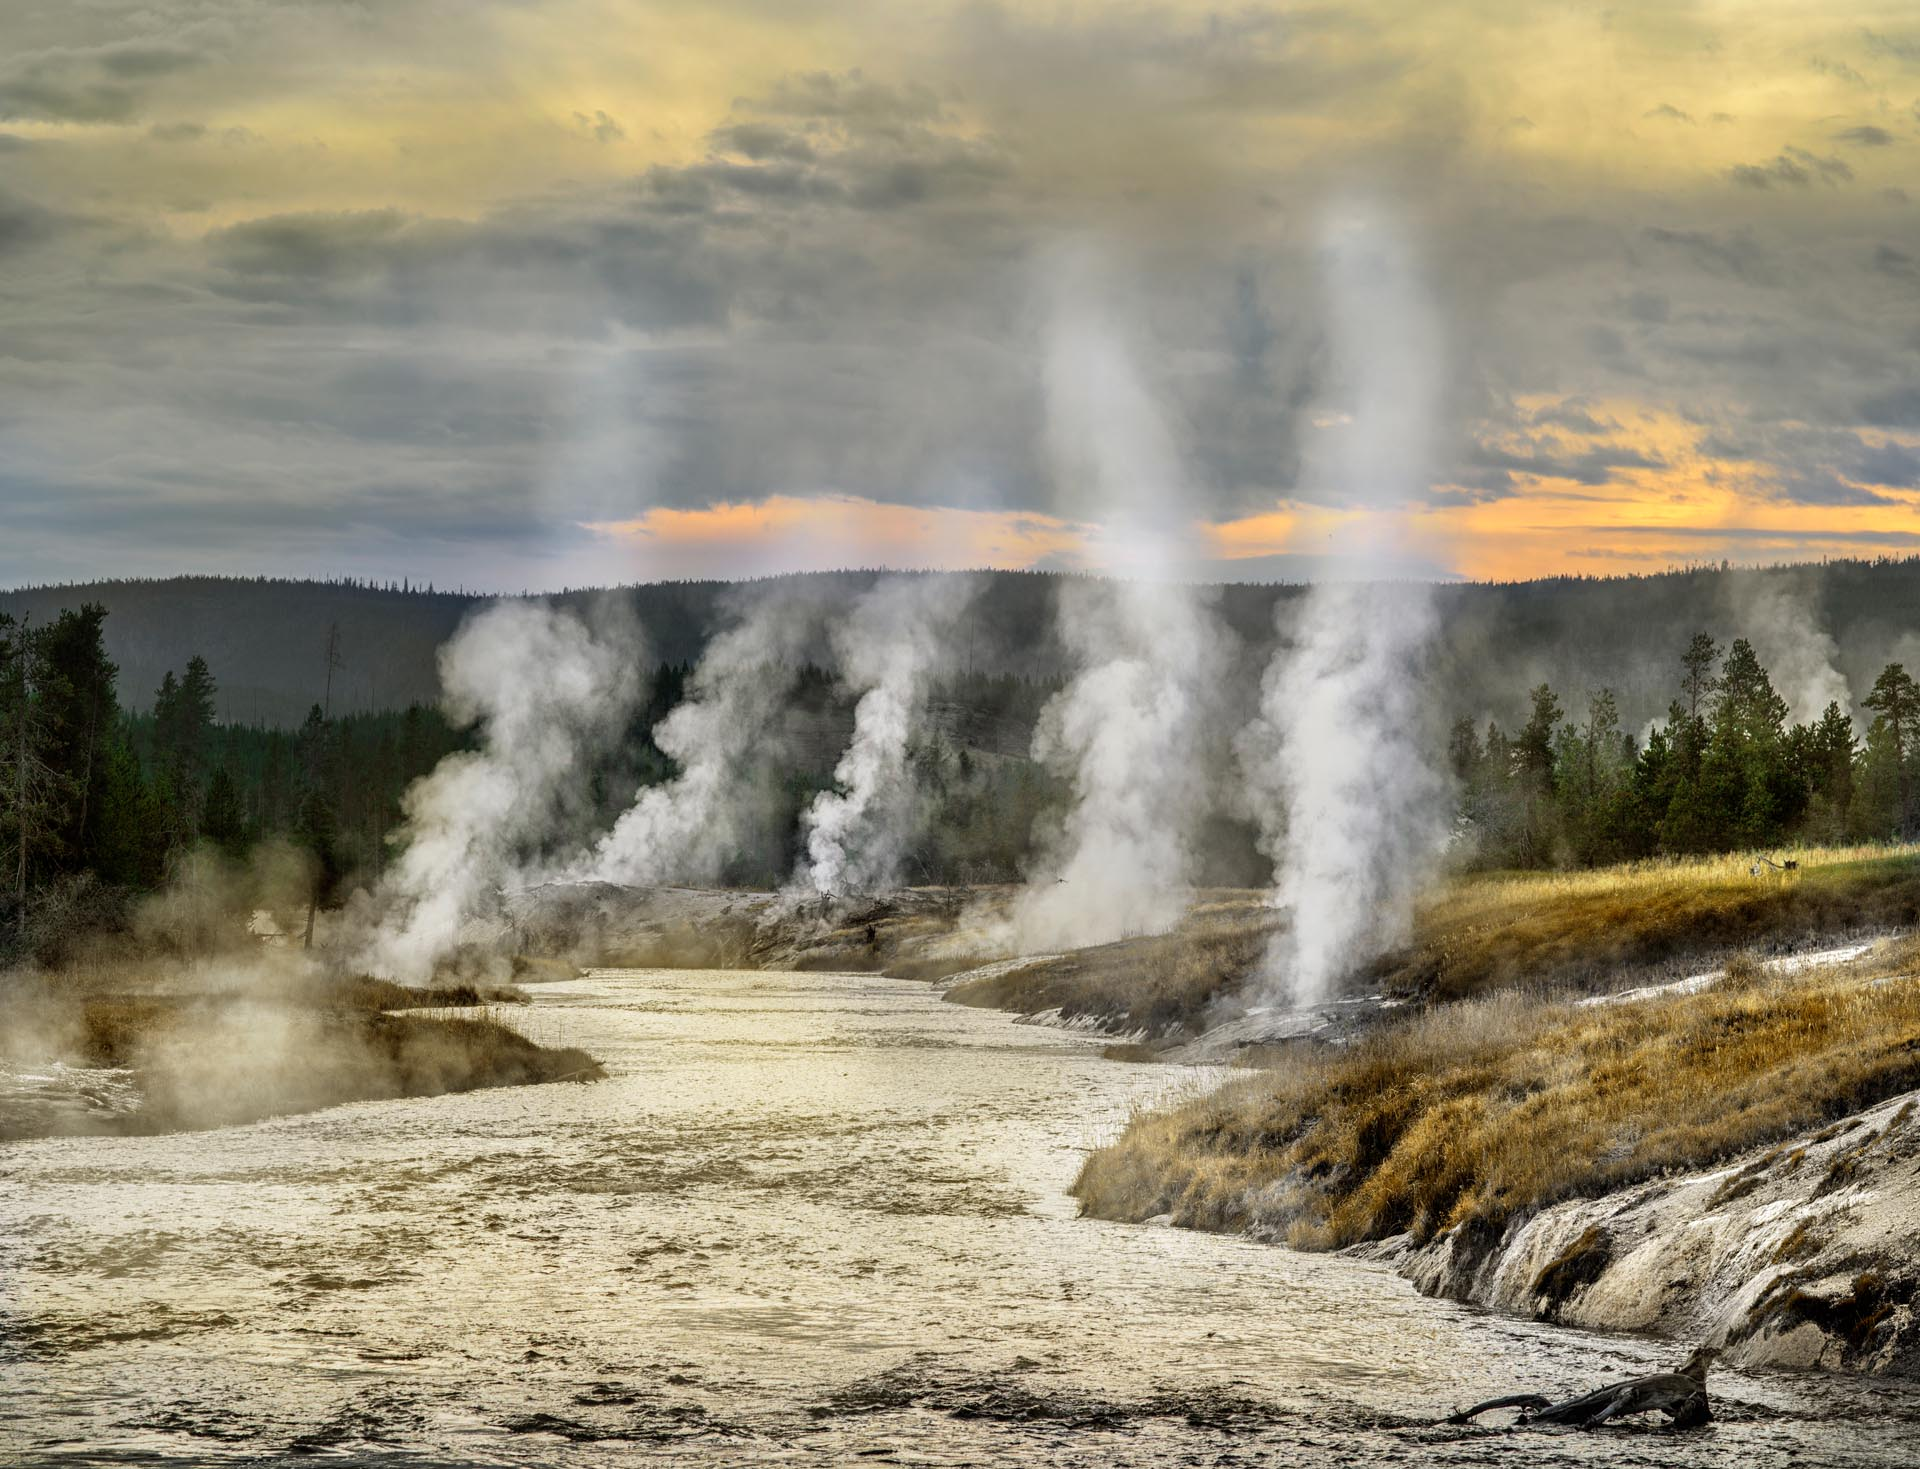 Geothermal fumaroles near Old Faithful area, Yellowstone National Park